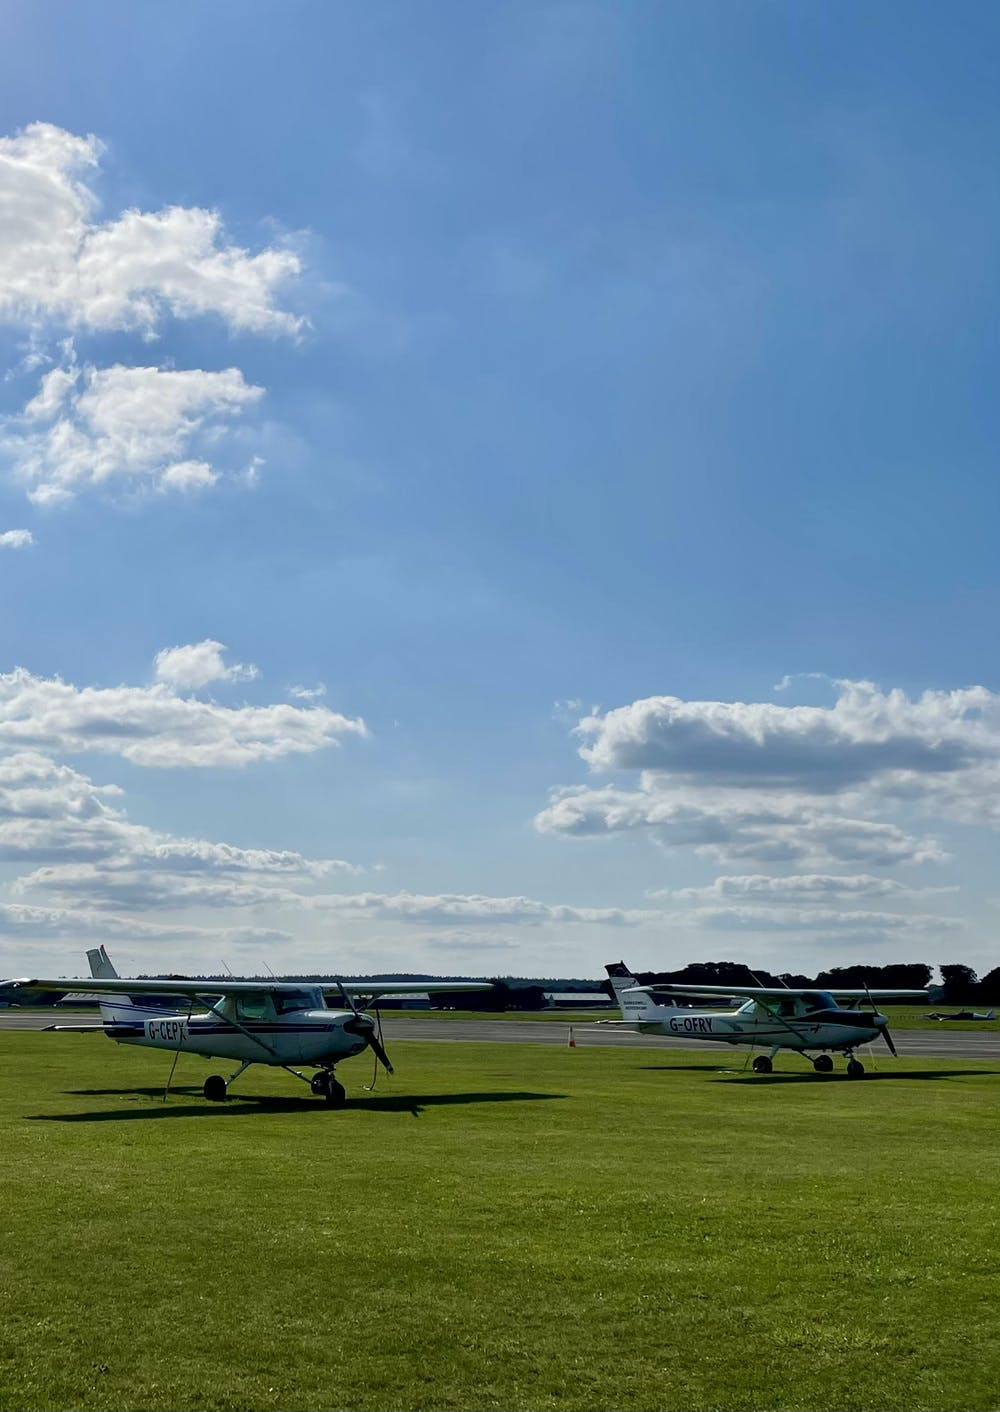 Two planes side by side at Dunkeswell Airfield